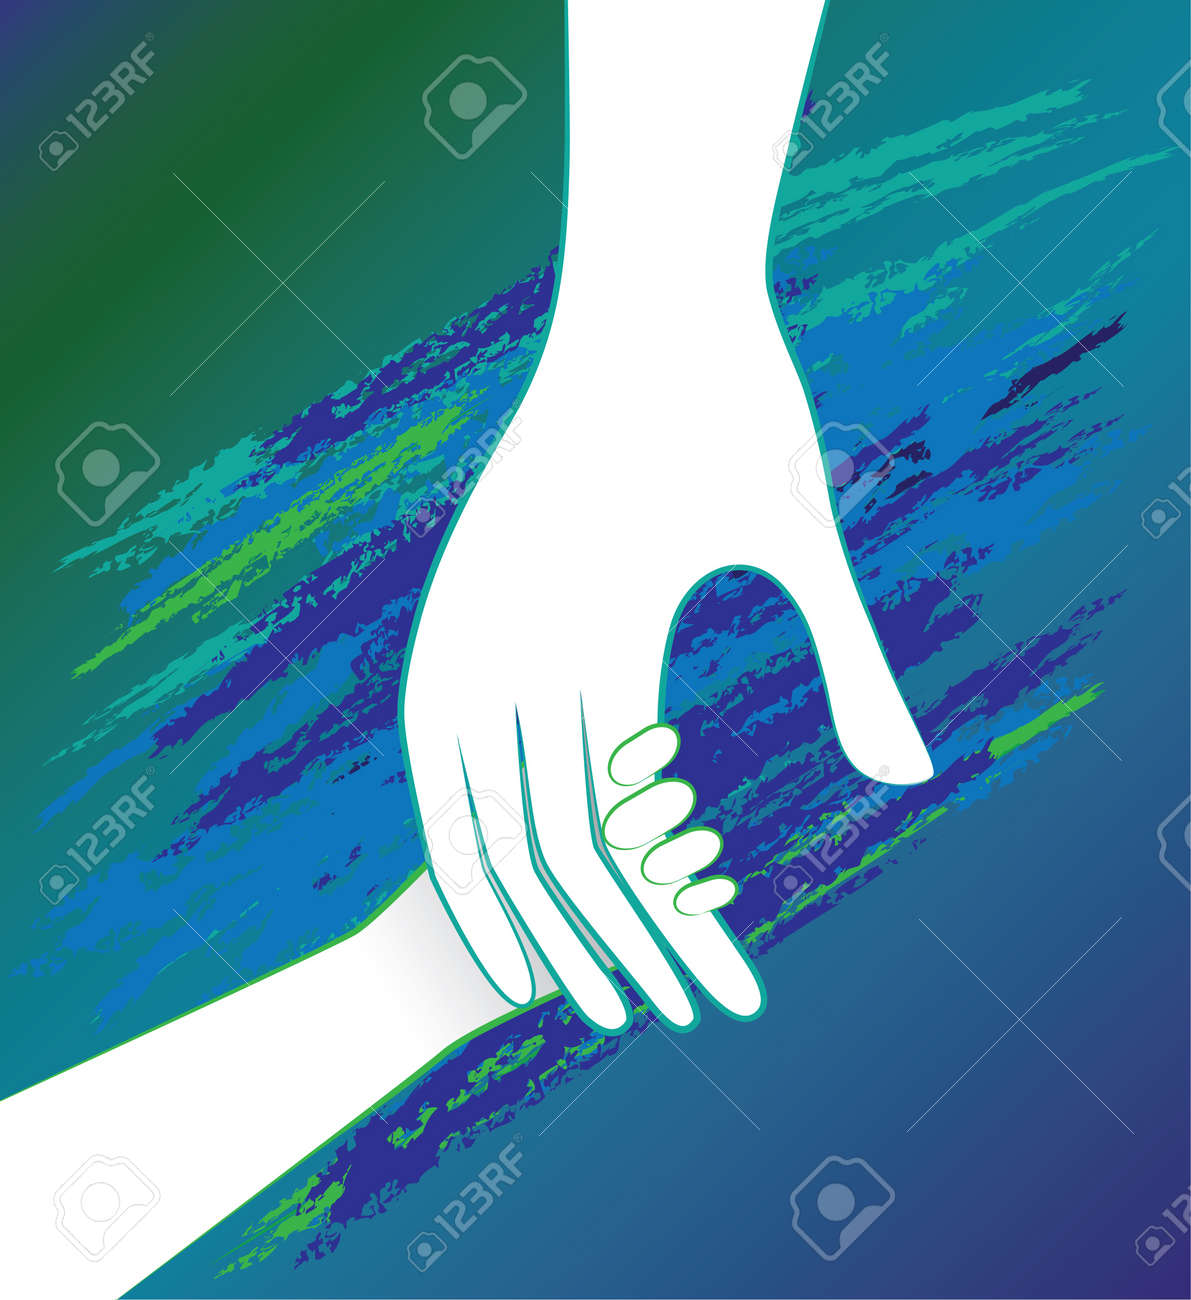 Hand of the child in father encouragement help. Support moral. Stock Vector - 15735295